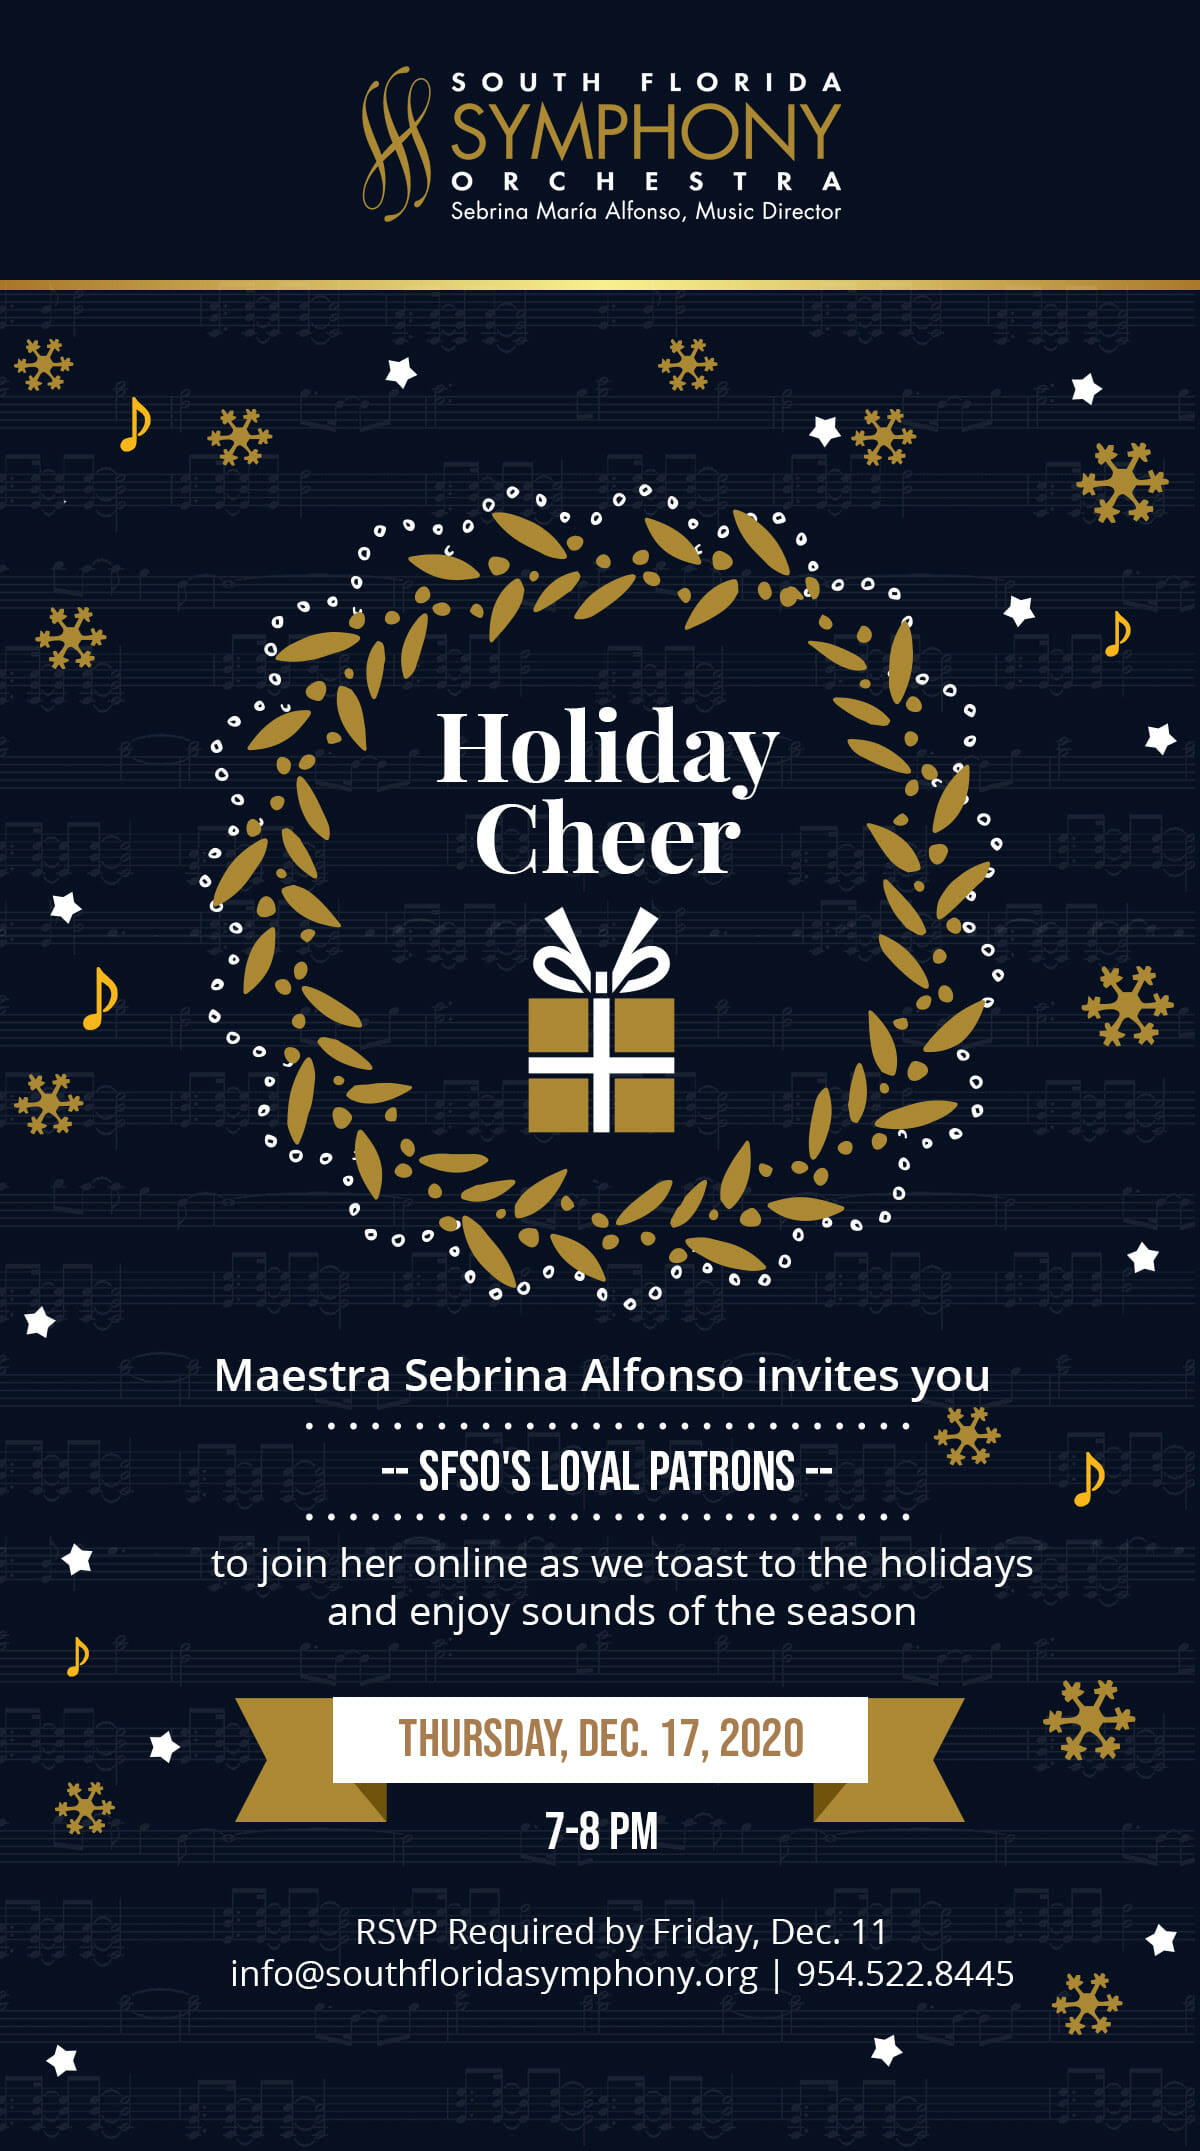 Last Day to RSVP for South Florida Symphony's Virtual Holliday Thursday, December 17 at 7PM